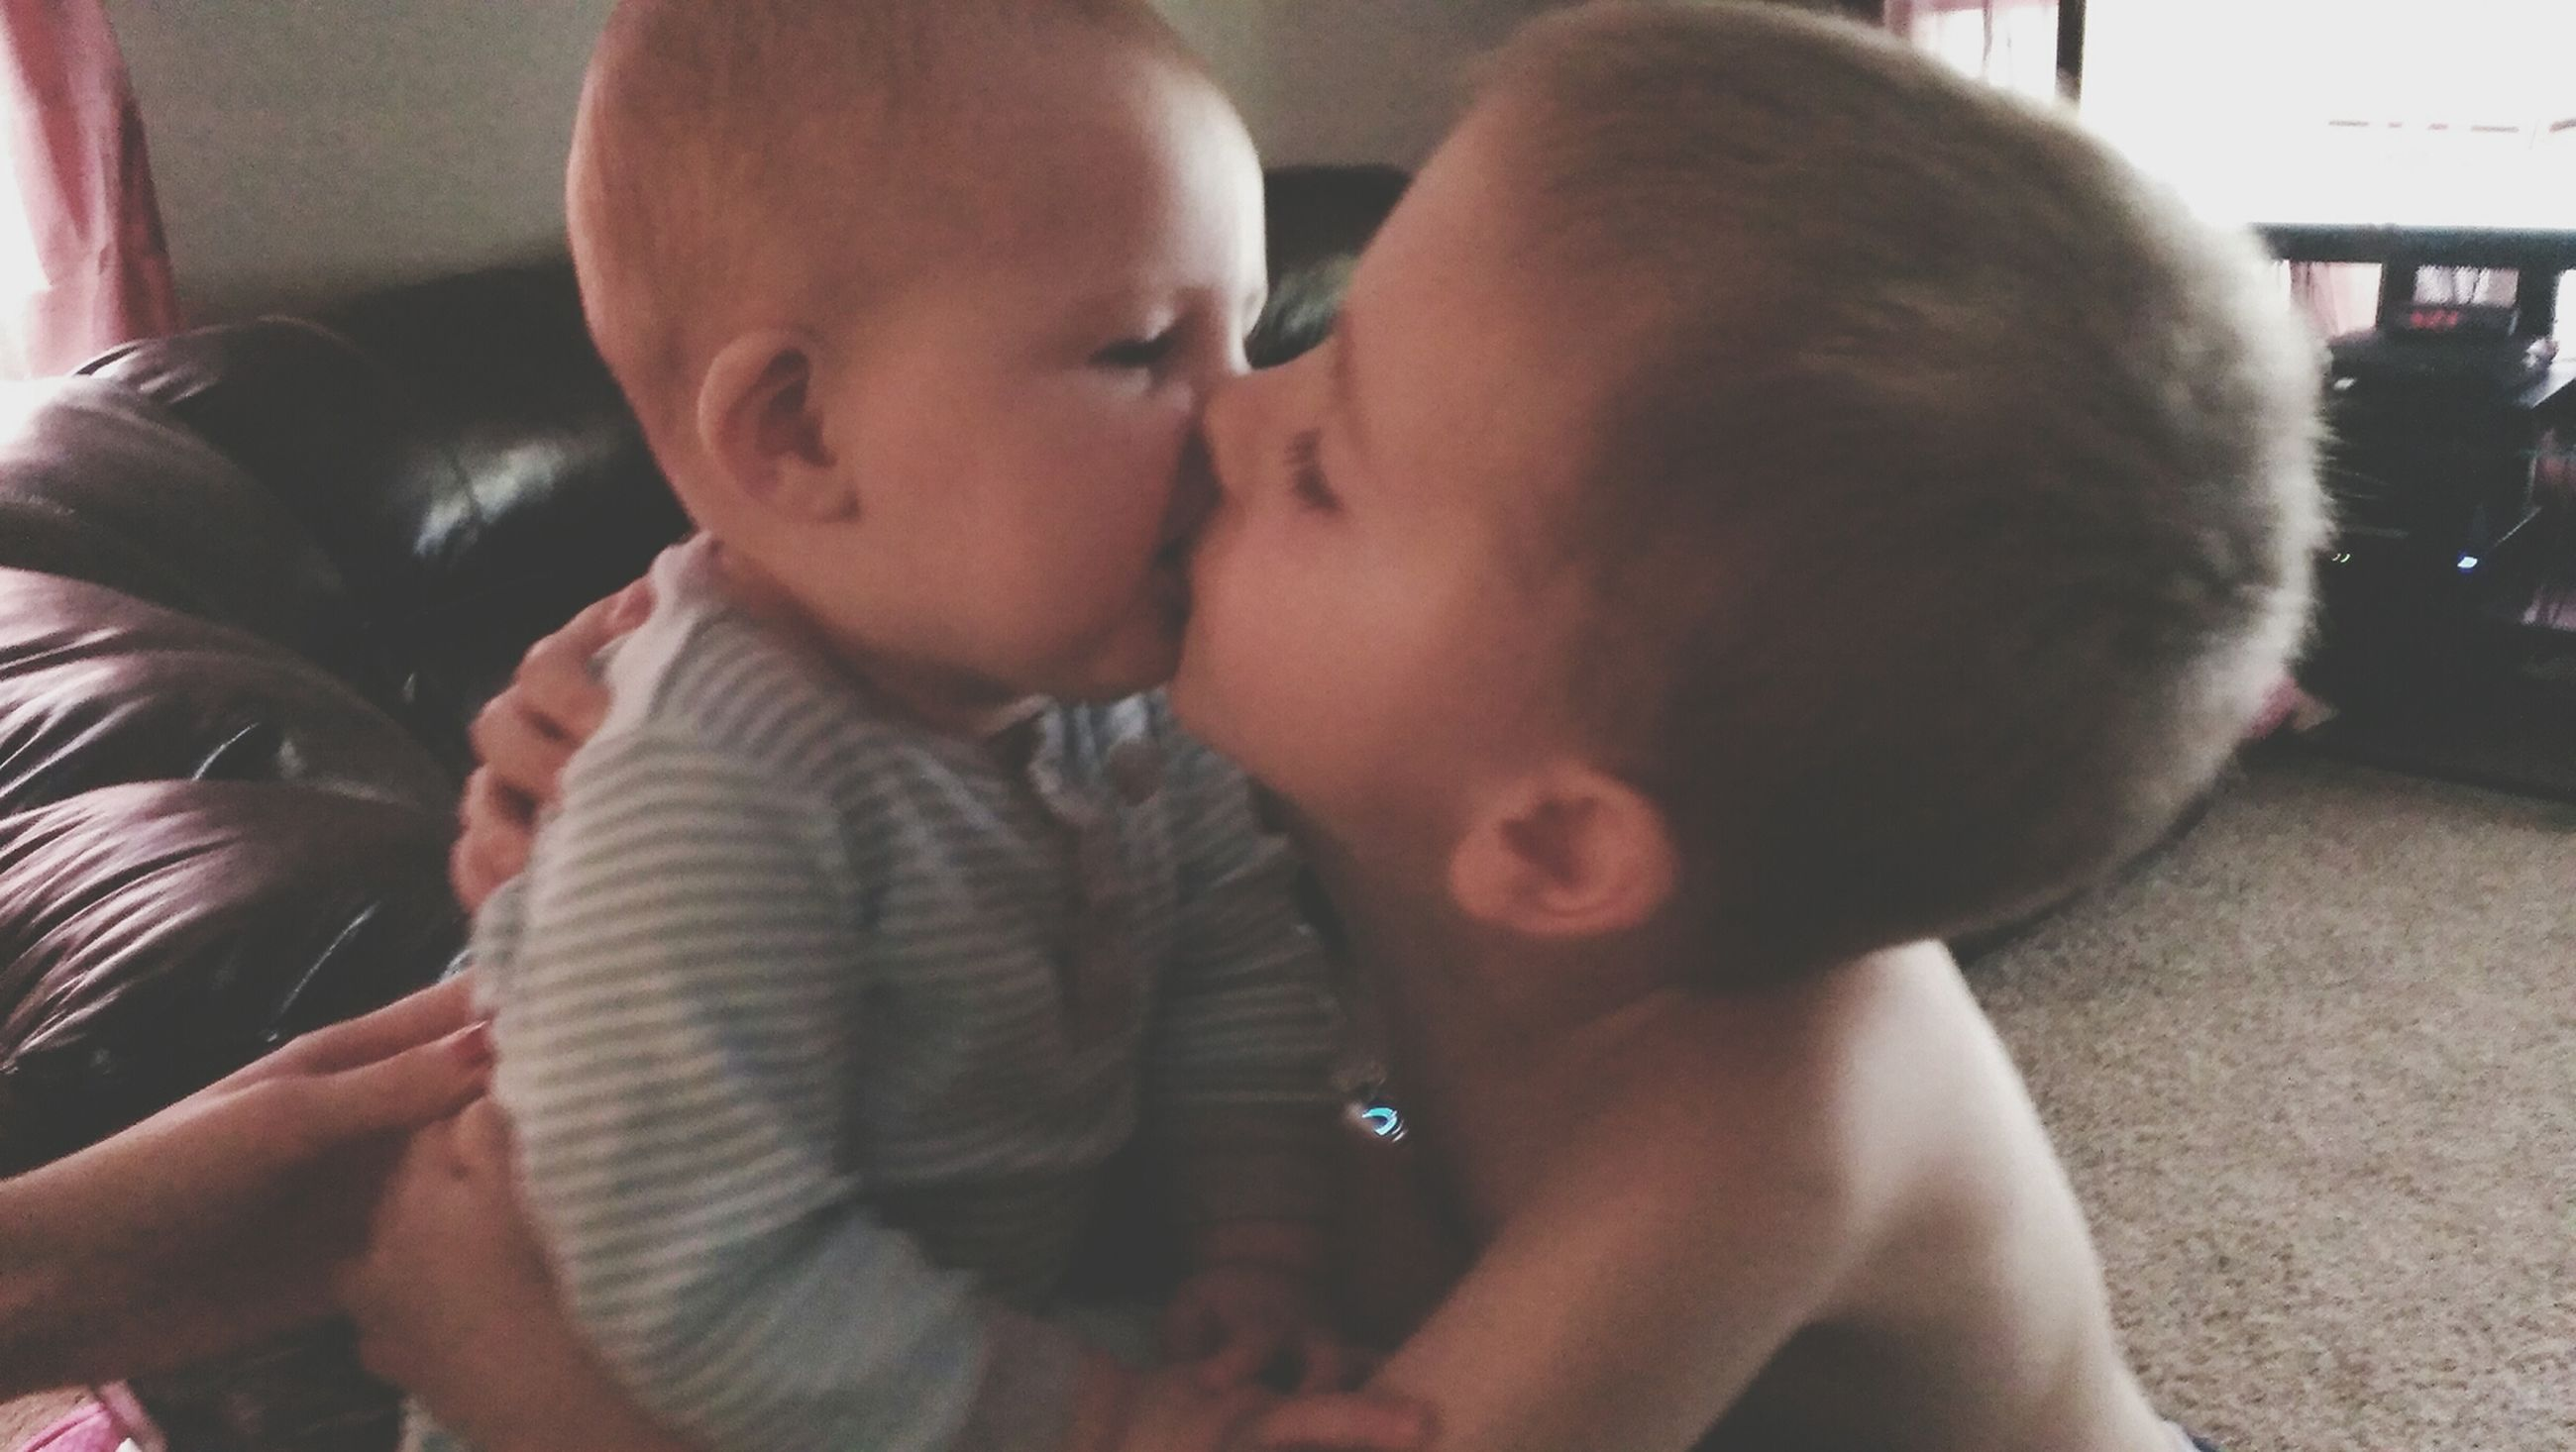 childhood, lifestyles, elementary age, innocence, leisure activity, boys, baby, cute, babyhood, holding, bonding, toddler, togetherness, girls, indoors, person